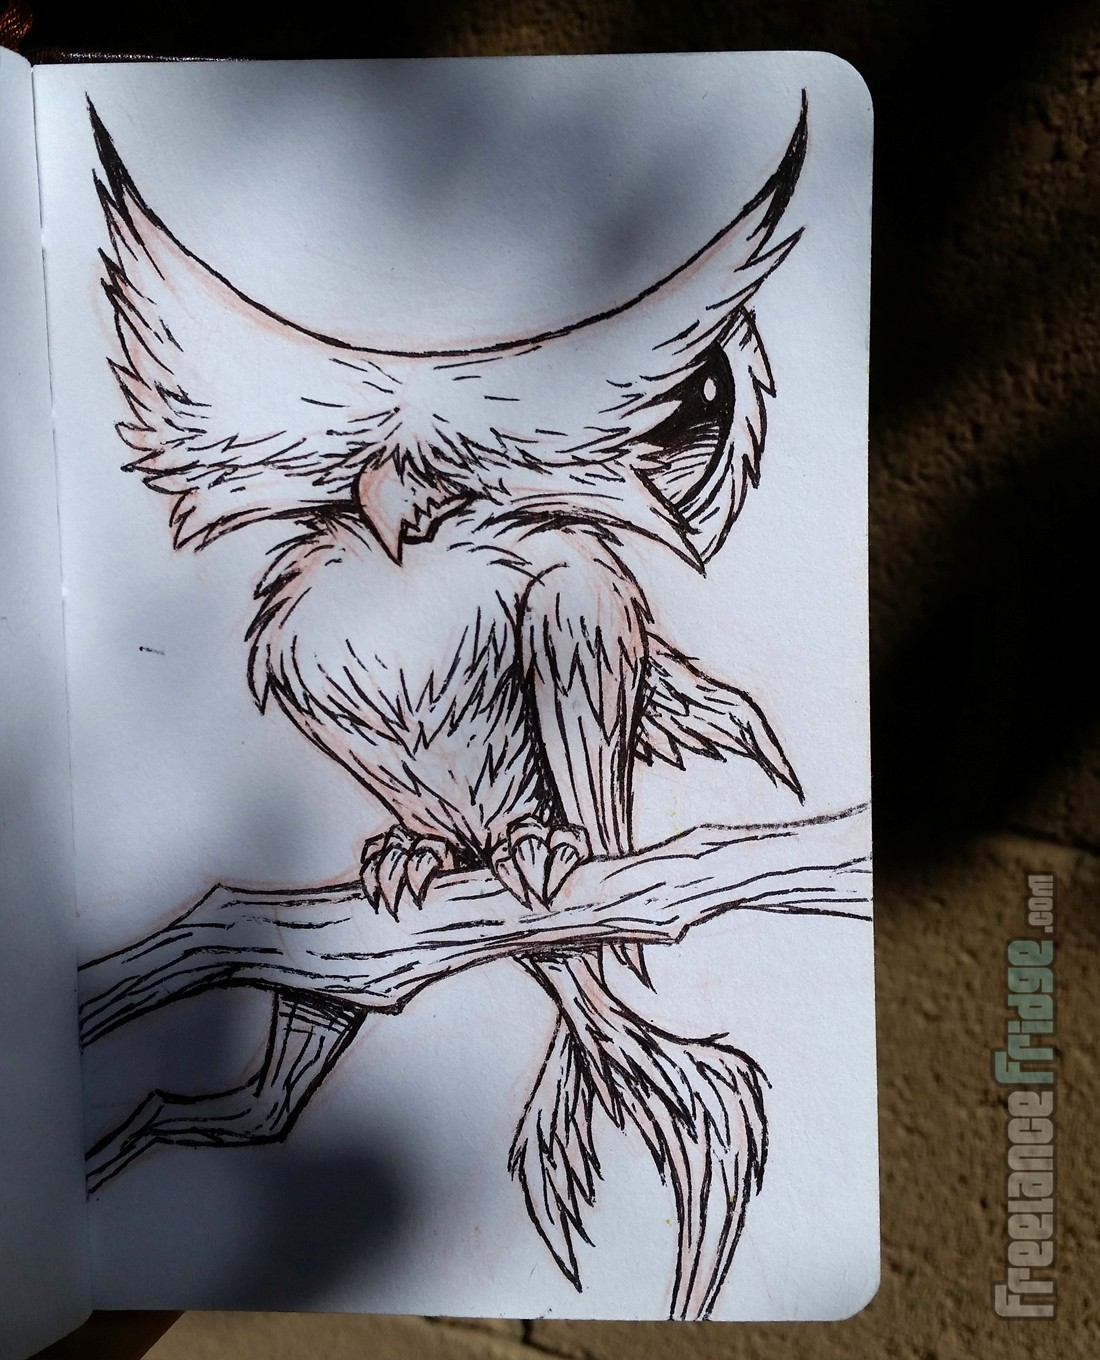 Hammerhead Shark Owl HammerWho Creature Concept Cartoon Inked Drawing Sketch